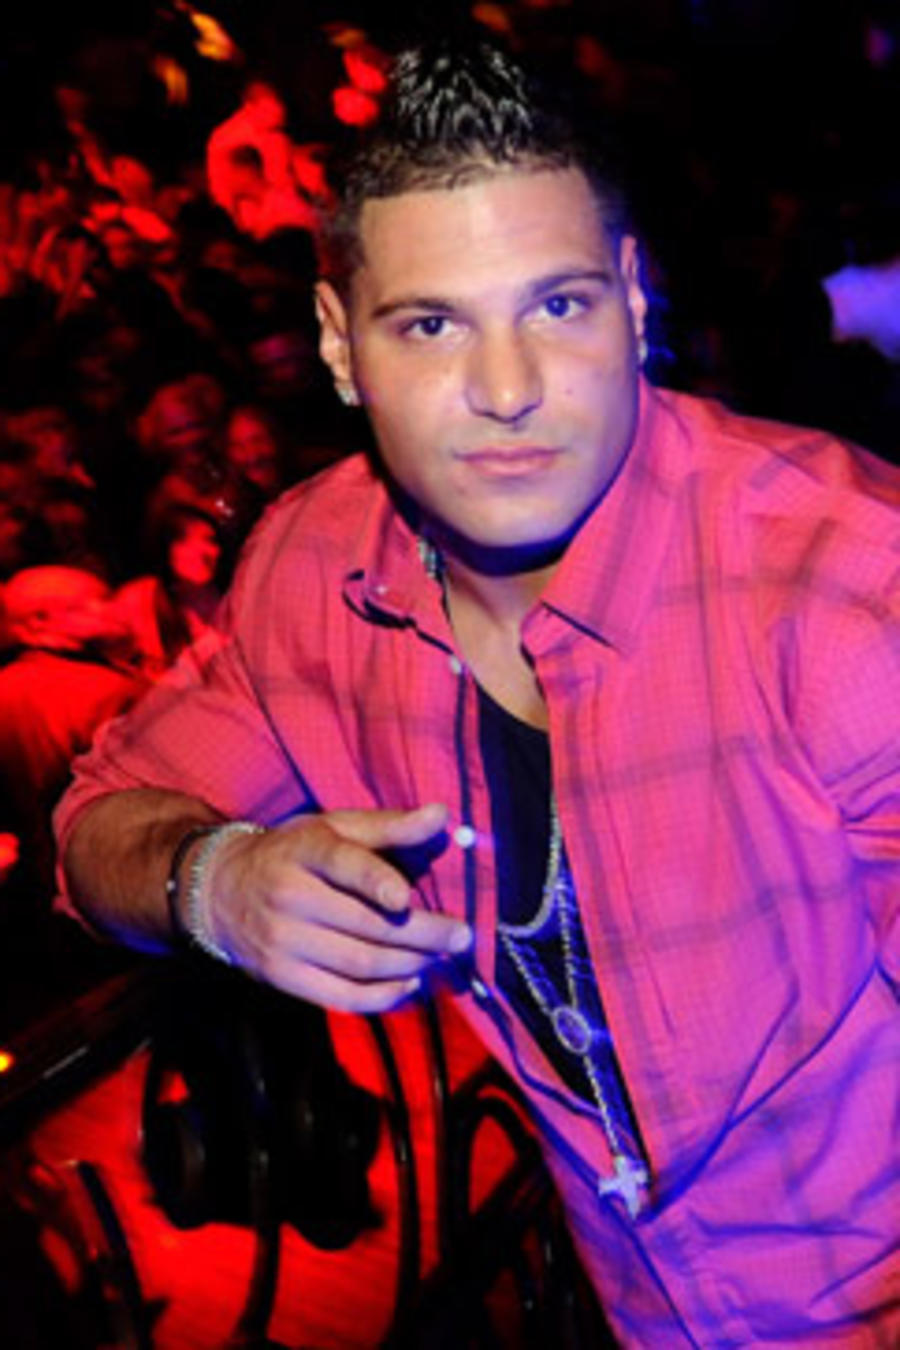 'Jersey Shore' Star Ronnie Ortiz-Magro Pleads Not Guilty to Domestic Violence